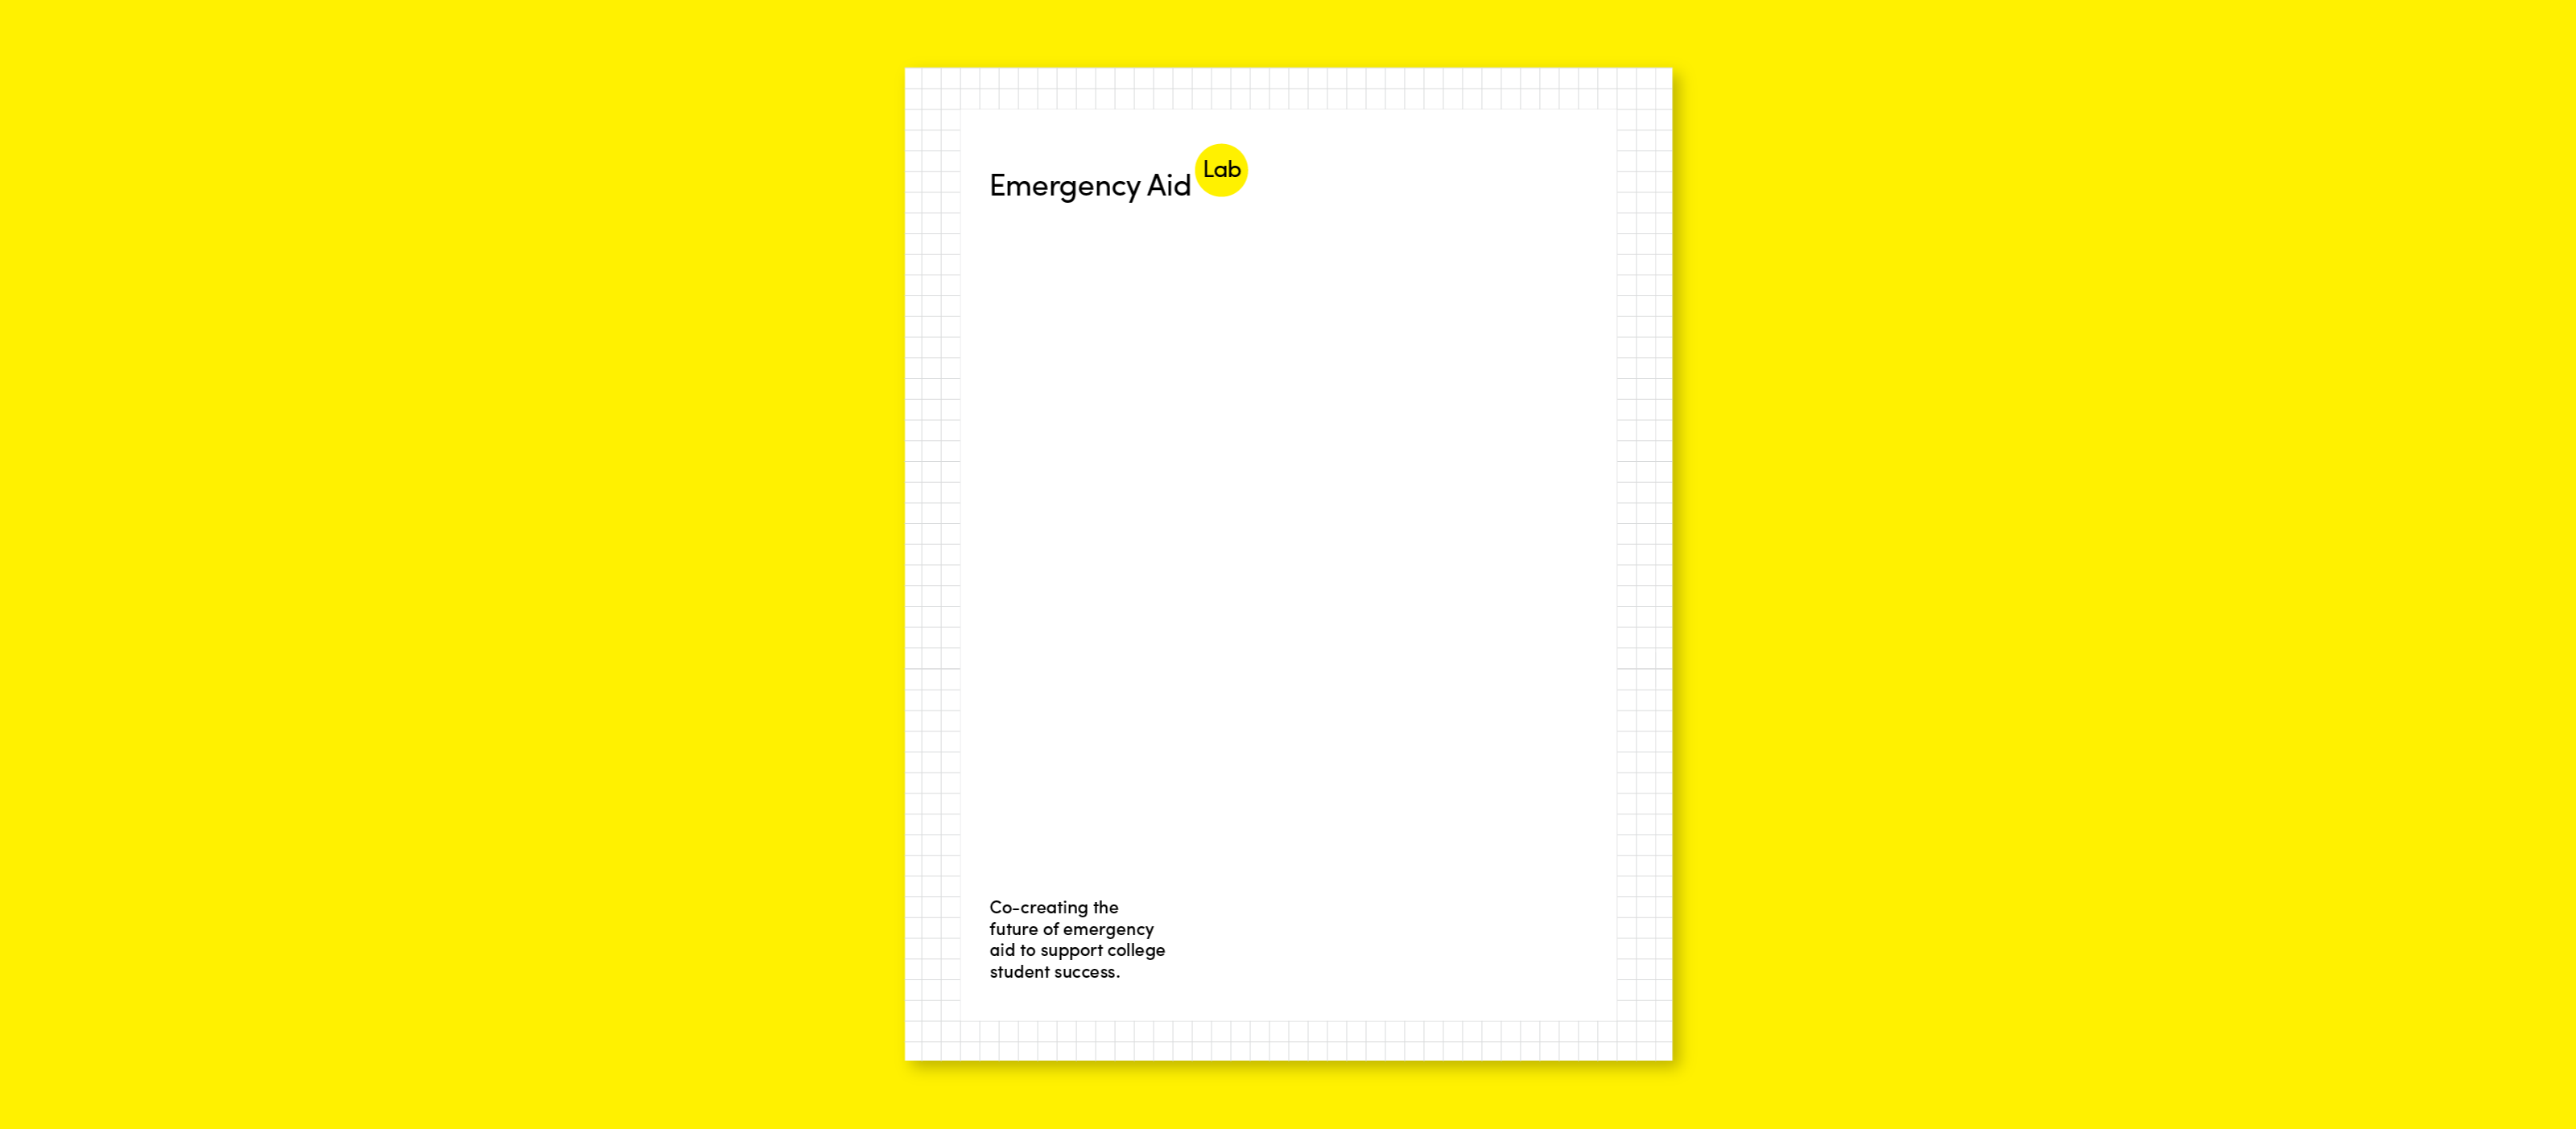 Example of a letterhead for Emergency Aid Lab